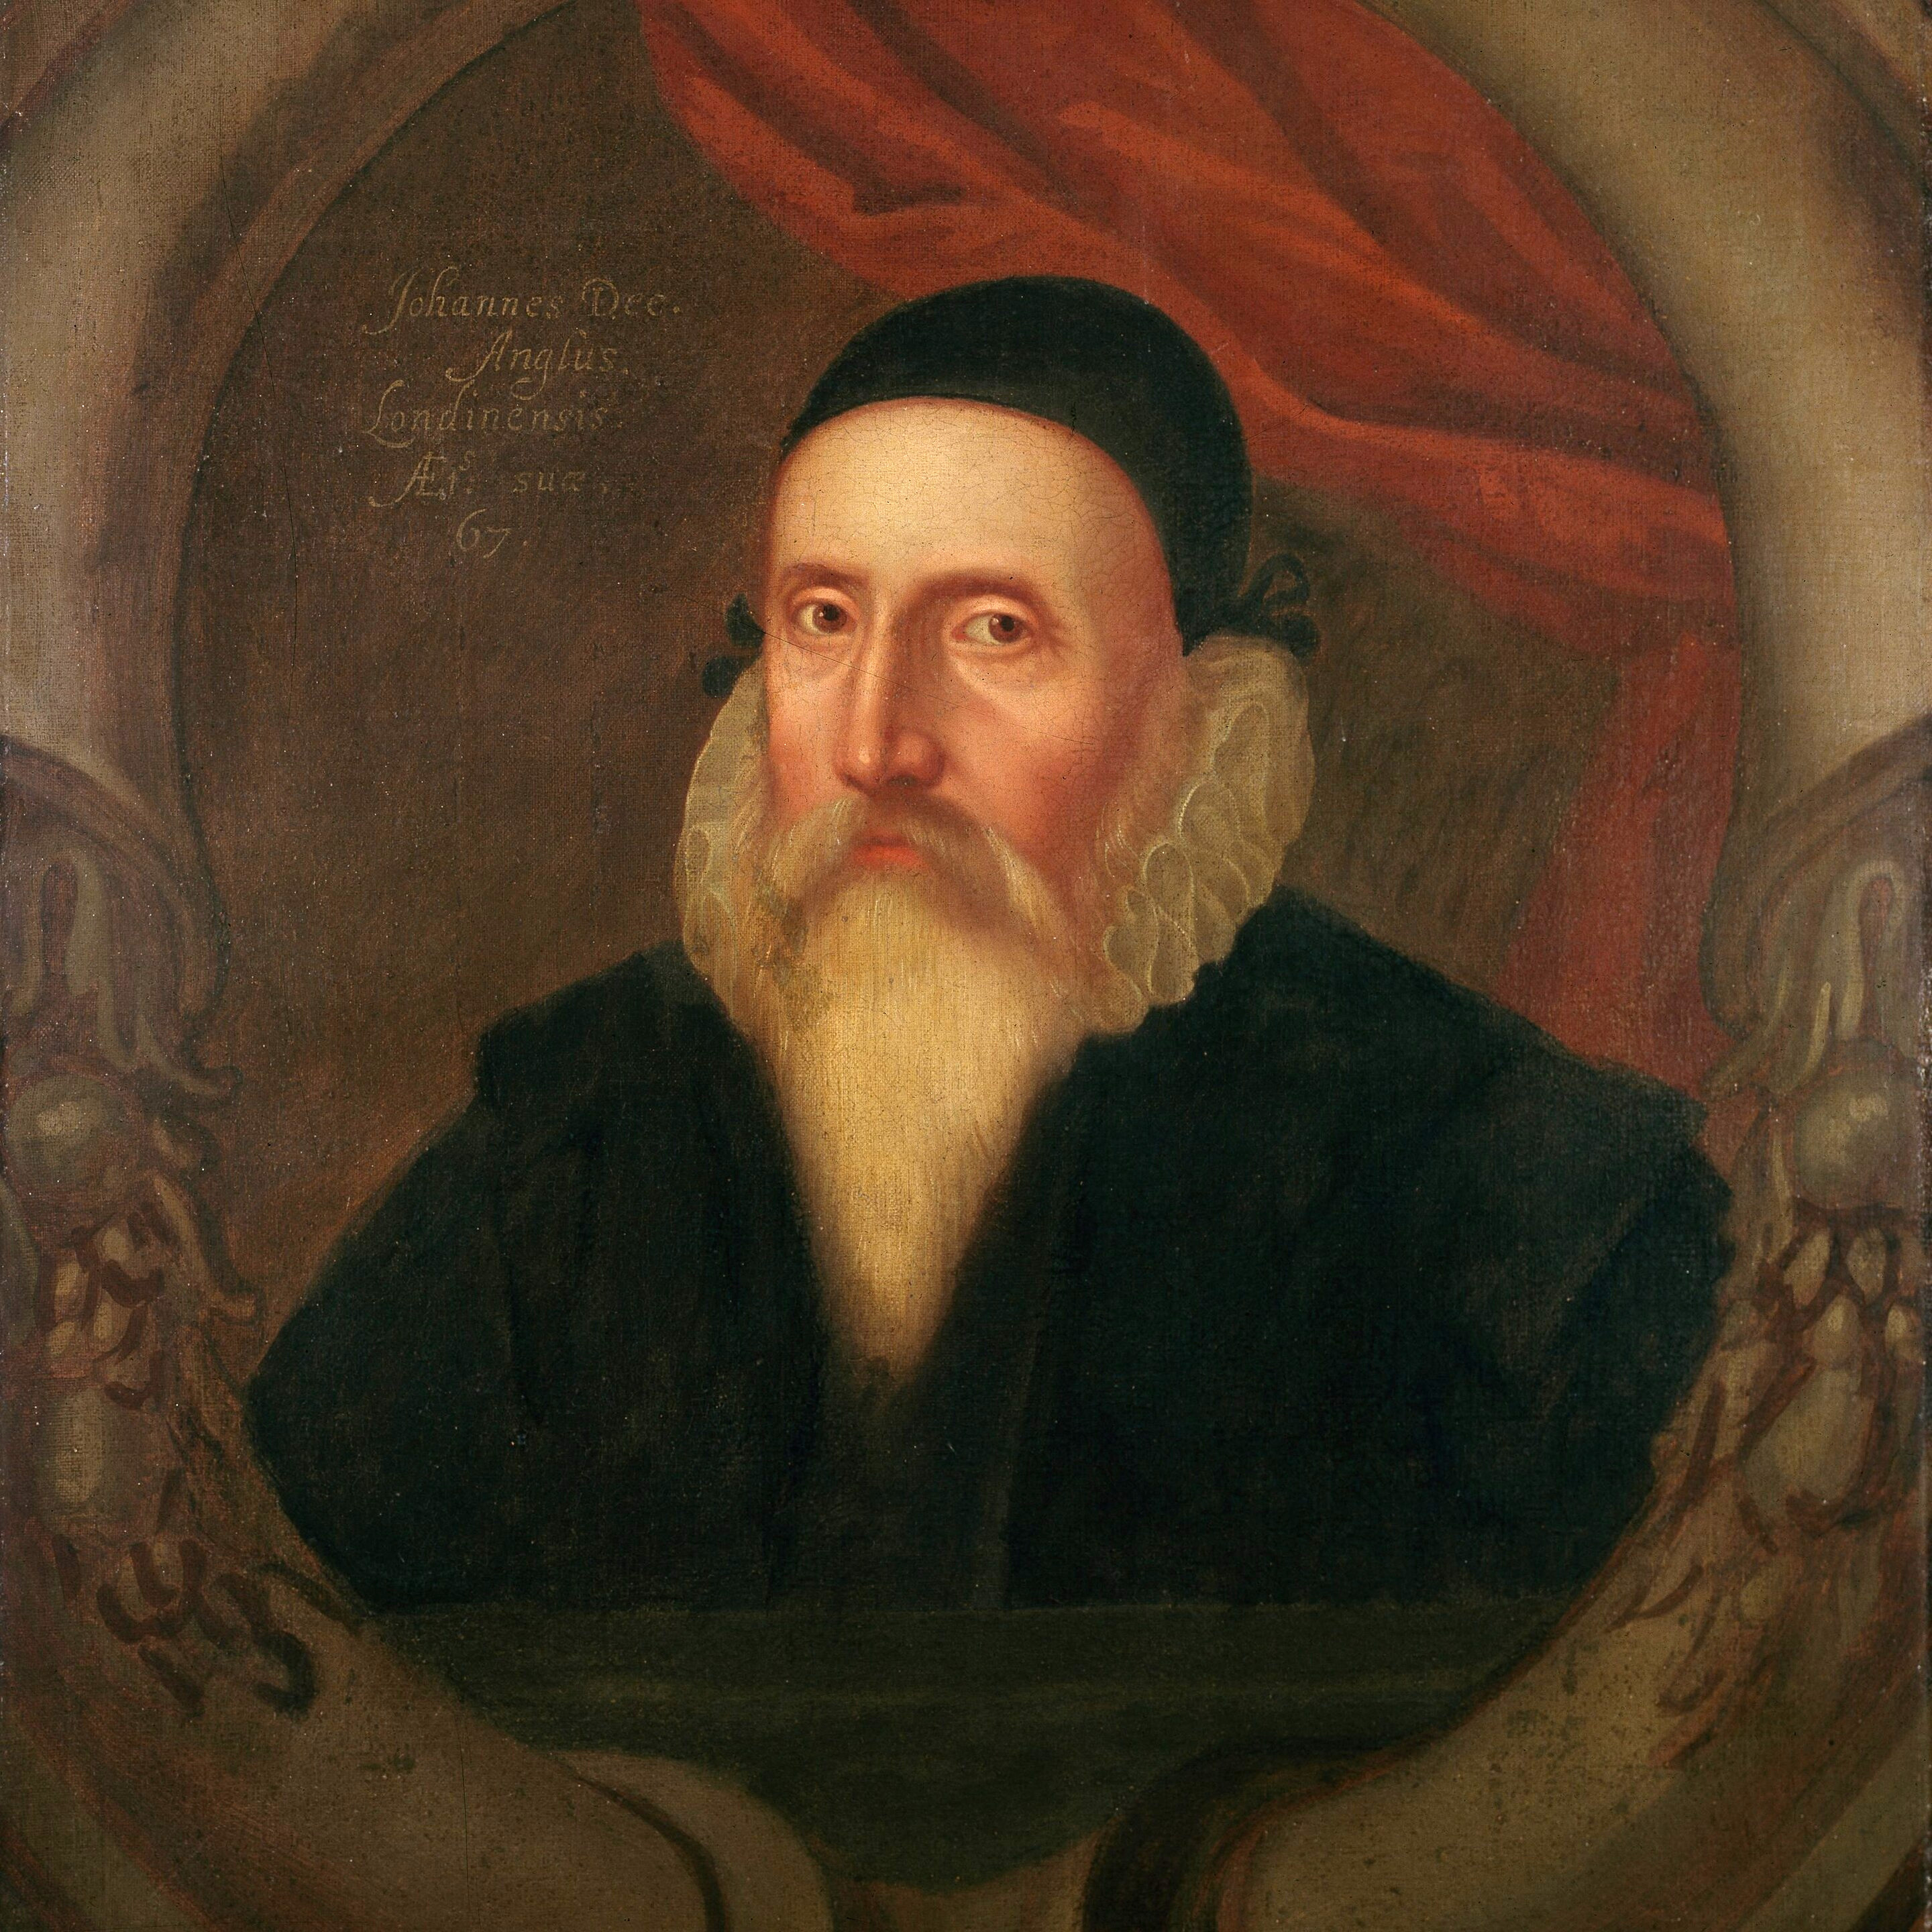 A 16th-century portrait of John Dee.